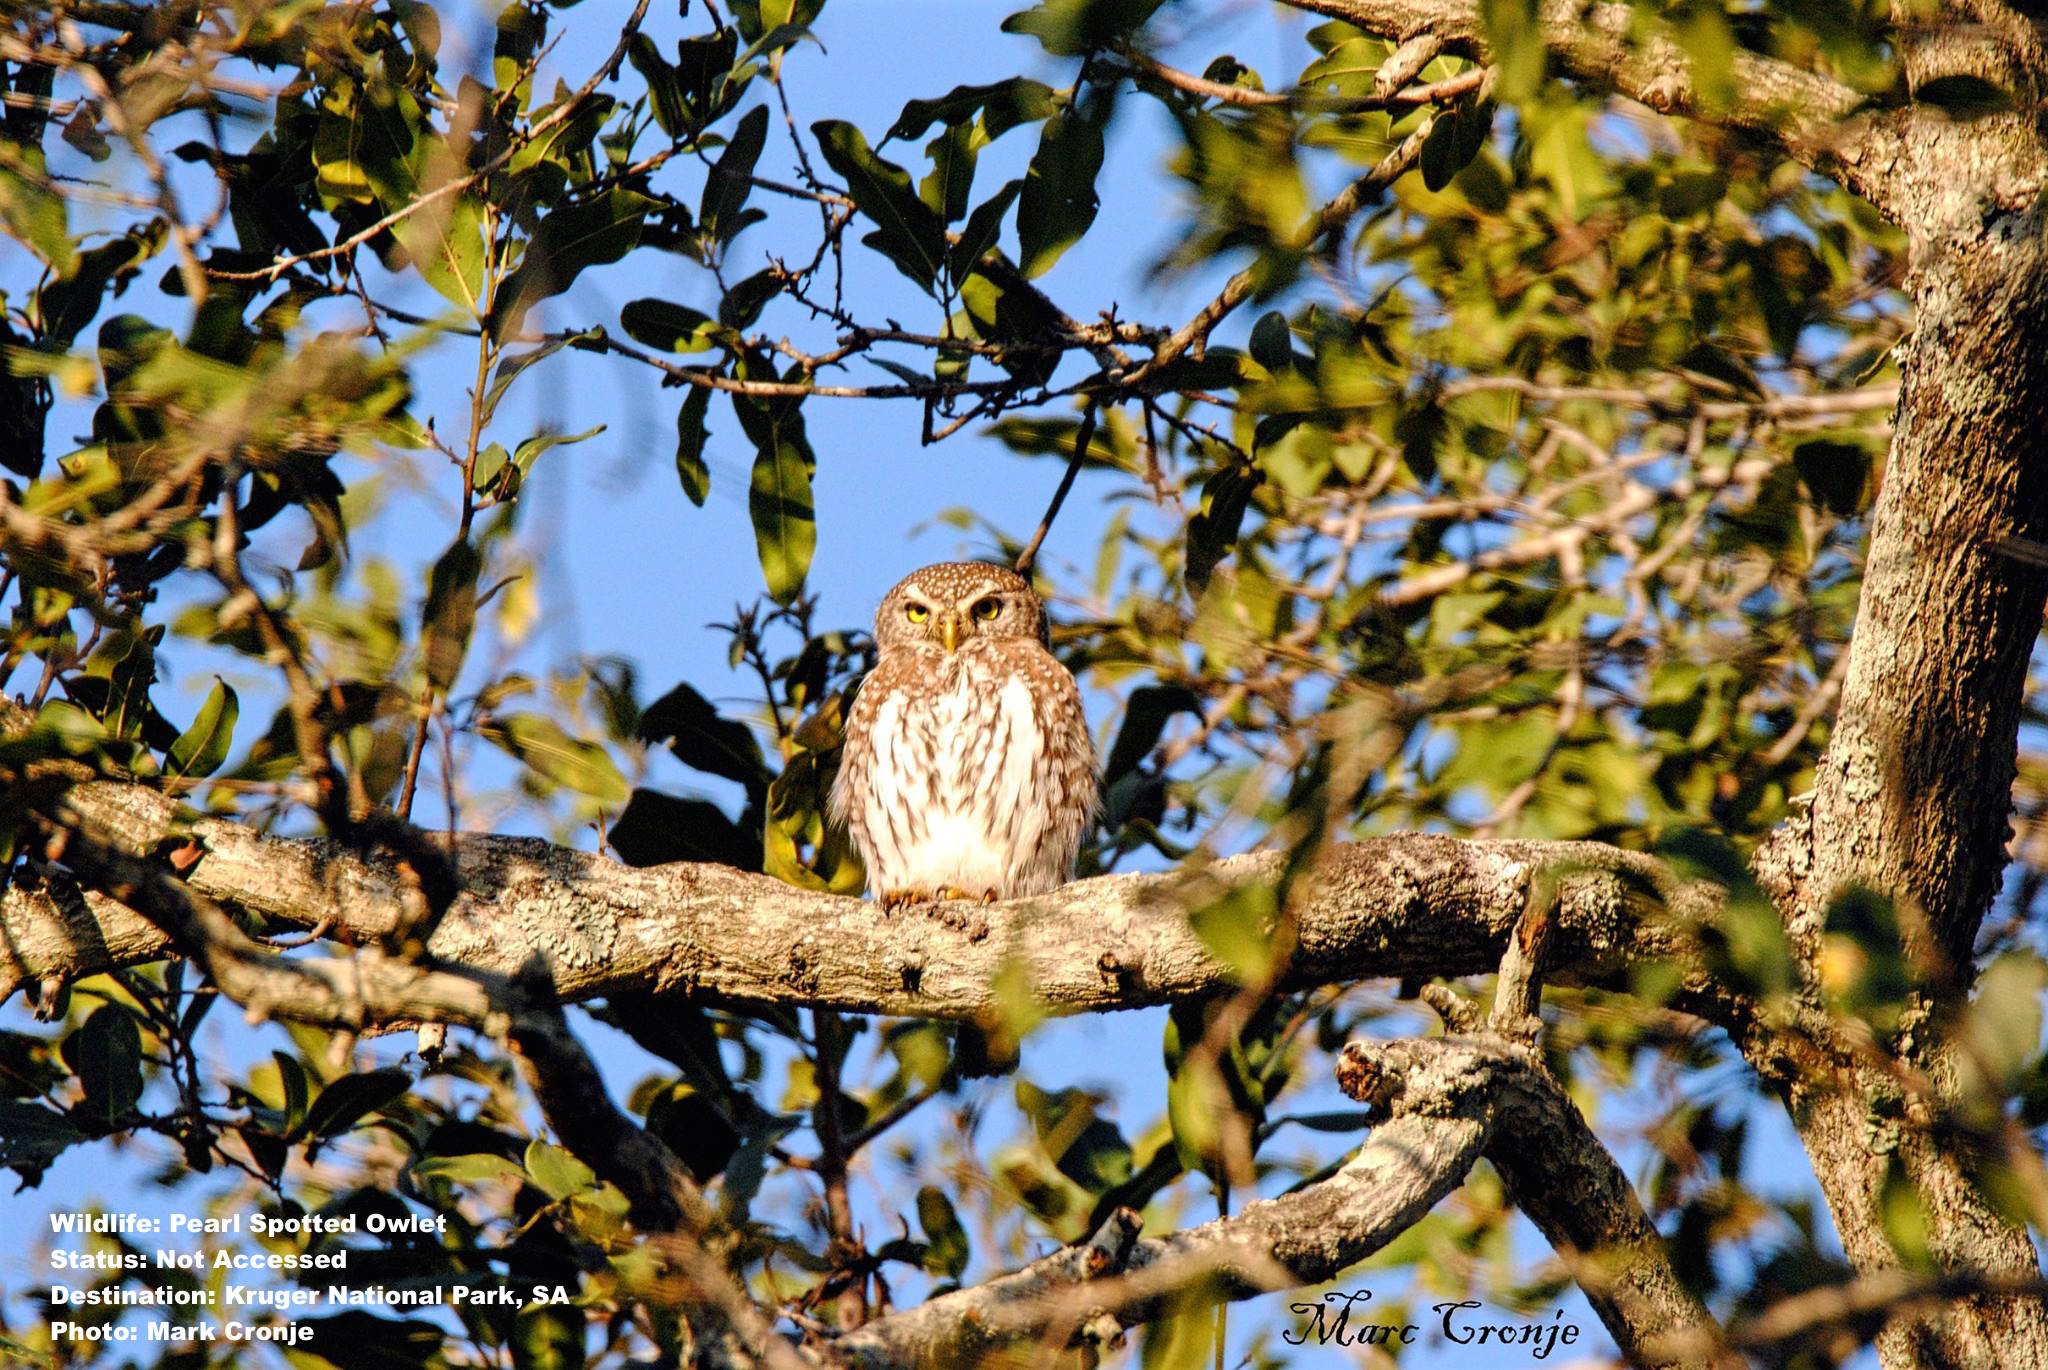 MC Pearl Spotted owlet 12440768_10209332215165980_7984159336206325429_o.jpg